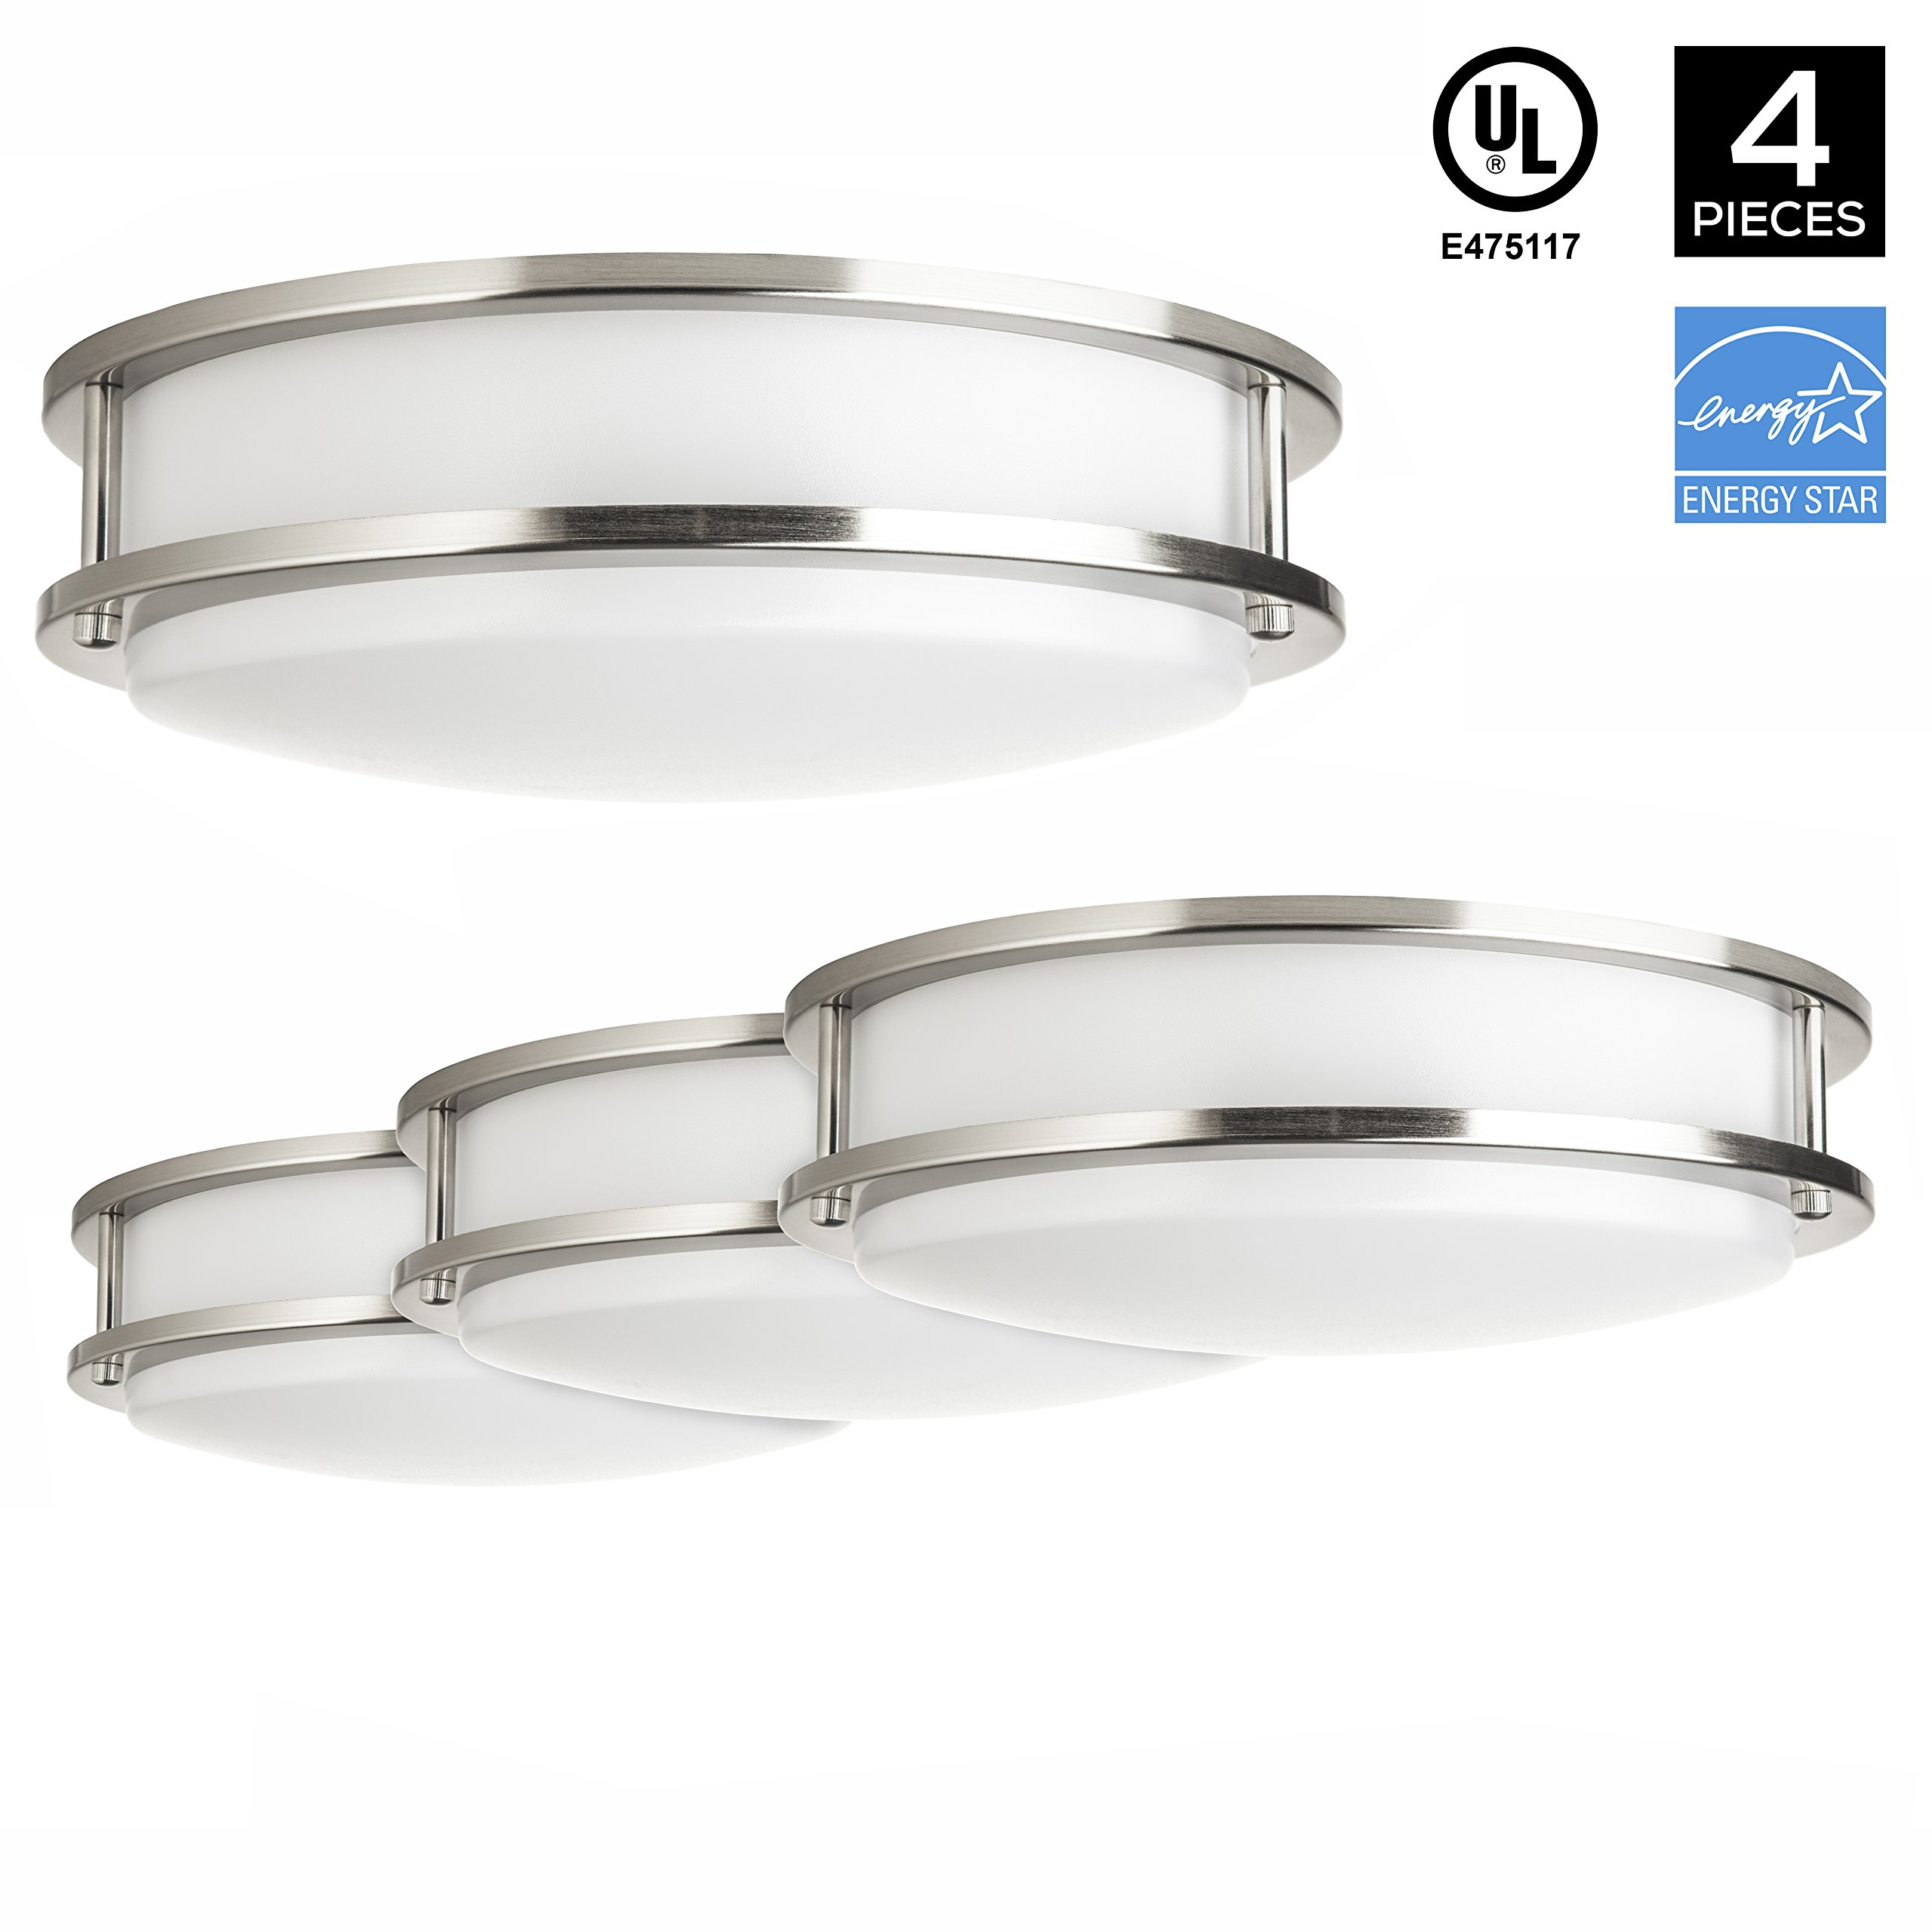 Hyperikon LED Flush Mount Ceiling Light, 14'', 25W (100W equivalent), 2270lm, 3000K (Soft White Glow), 120V, UL and ENERGY STAR Listed, 14-Inch Flush Mount, Dimmable - (Pack of 4)